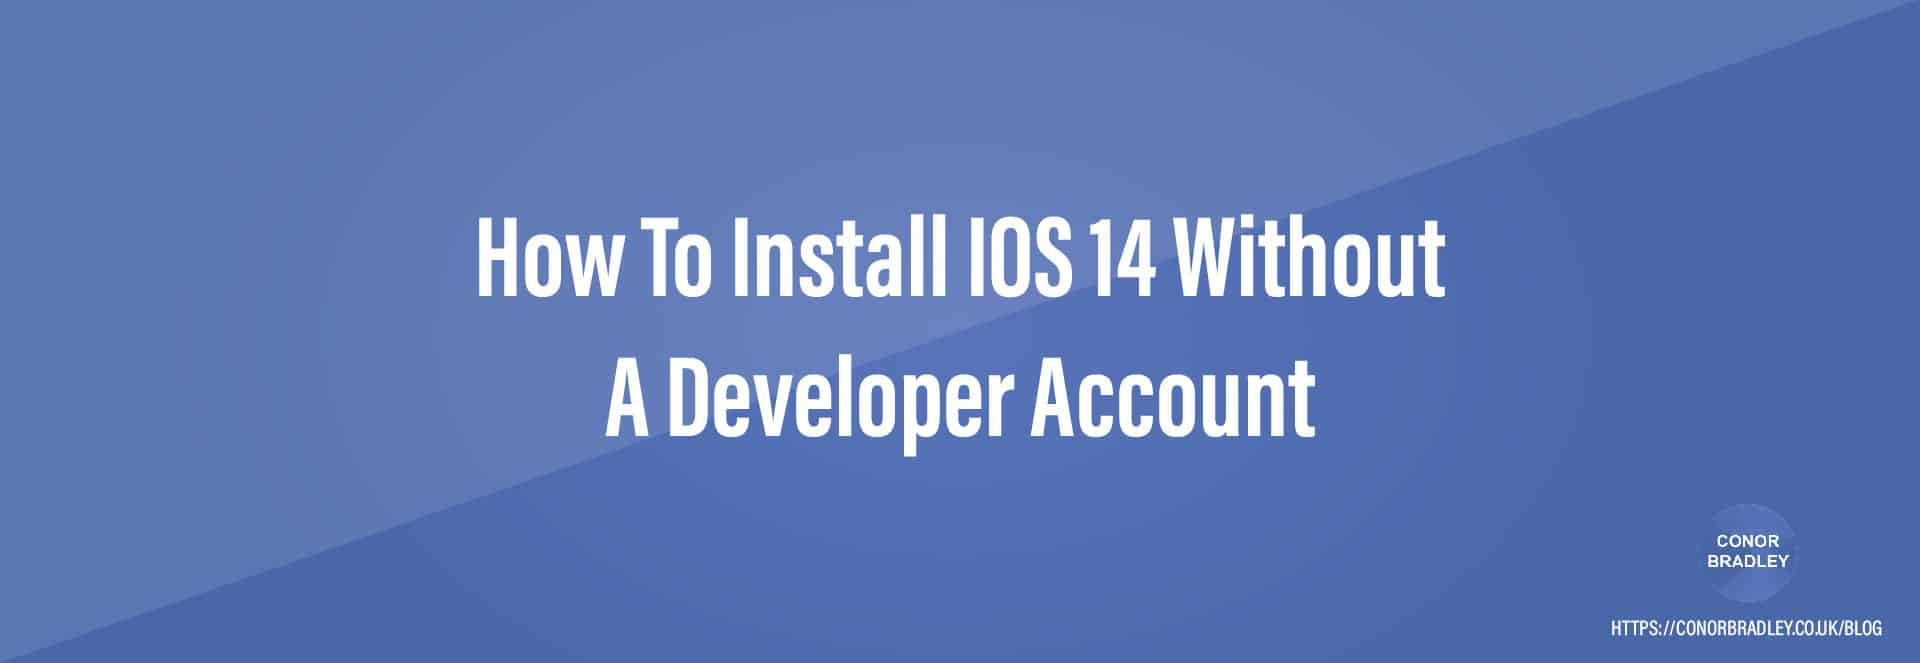 How To Install IOS 14 Without A Developer Account Banner